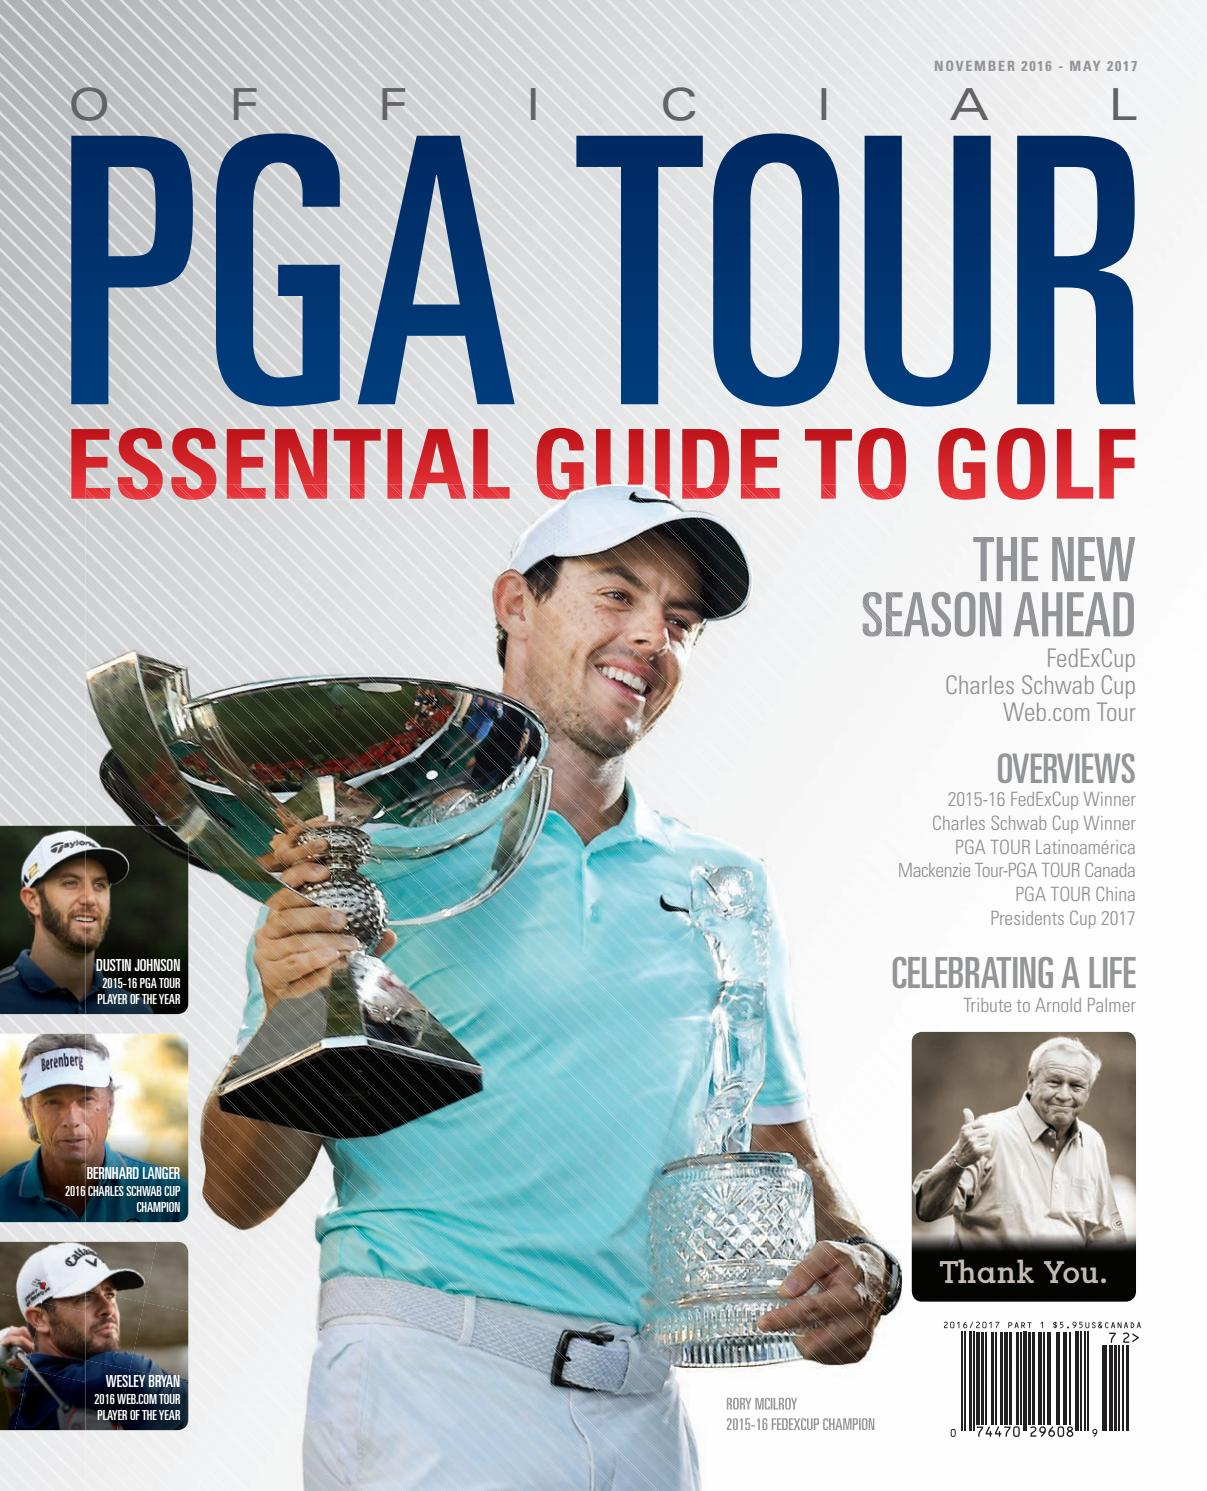 a3b76bb2 Official PGA TOUR Essential Guide to Golf 2016/17 Part 1 by Magazine - issuu